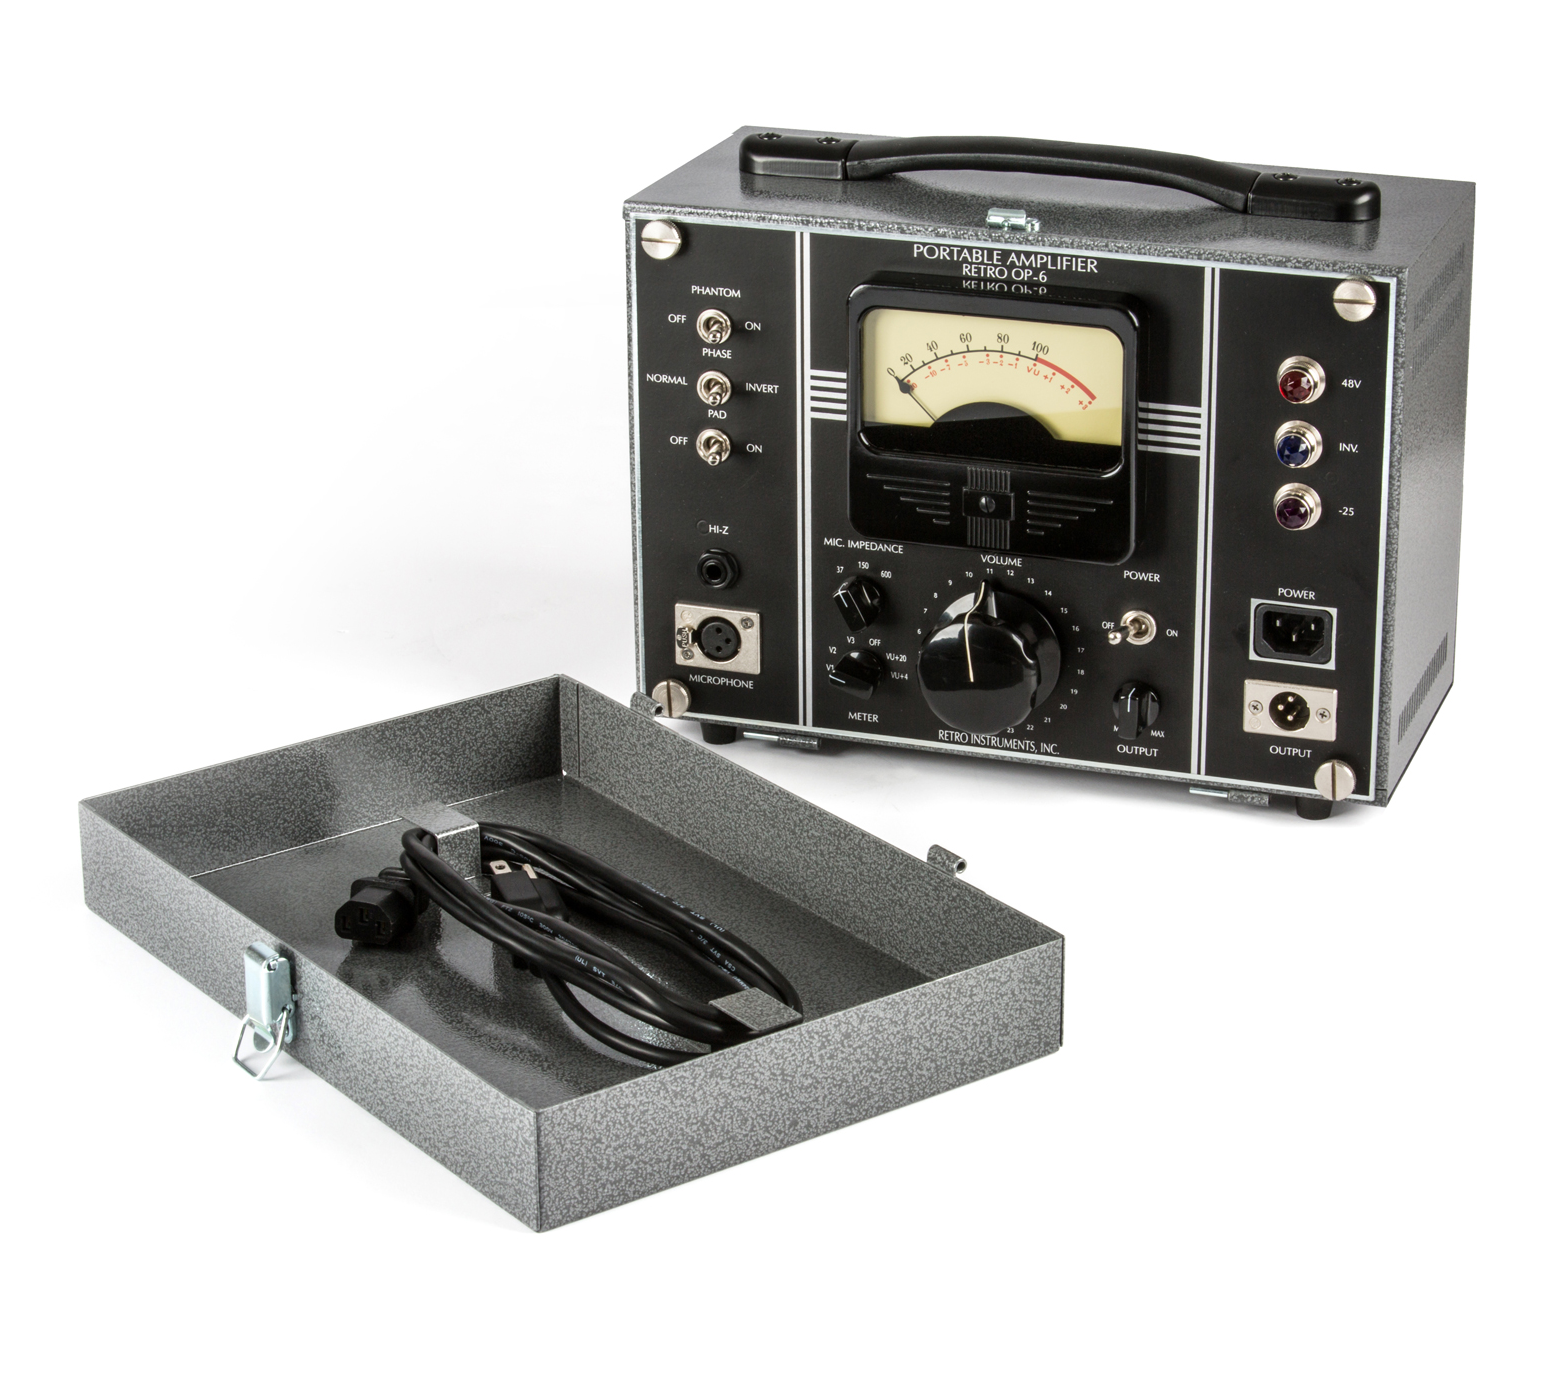 OP-6 Portable Amplifier